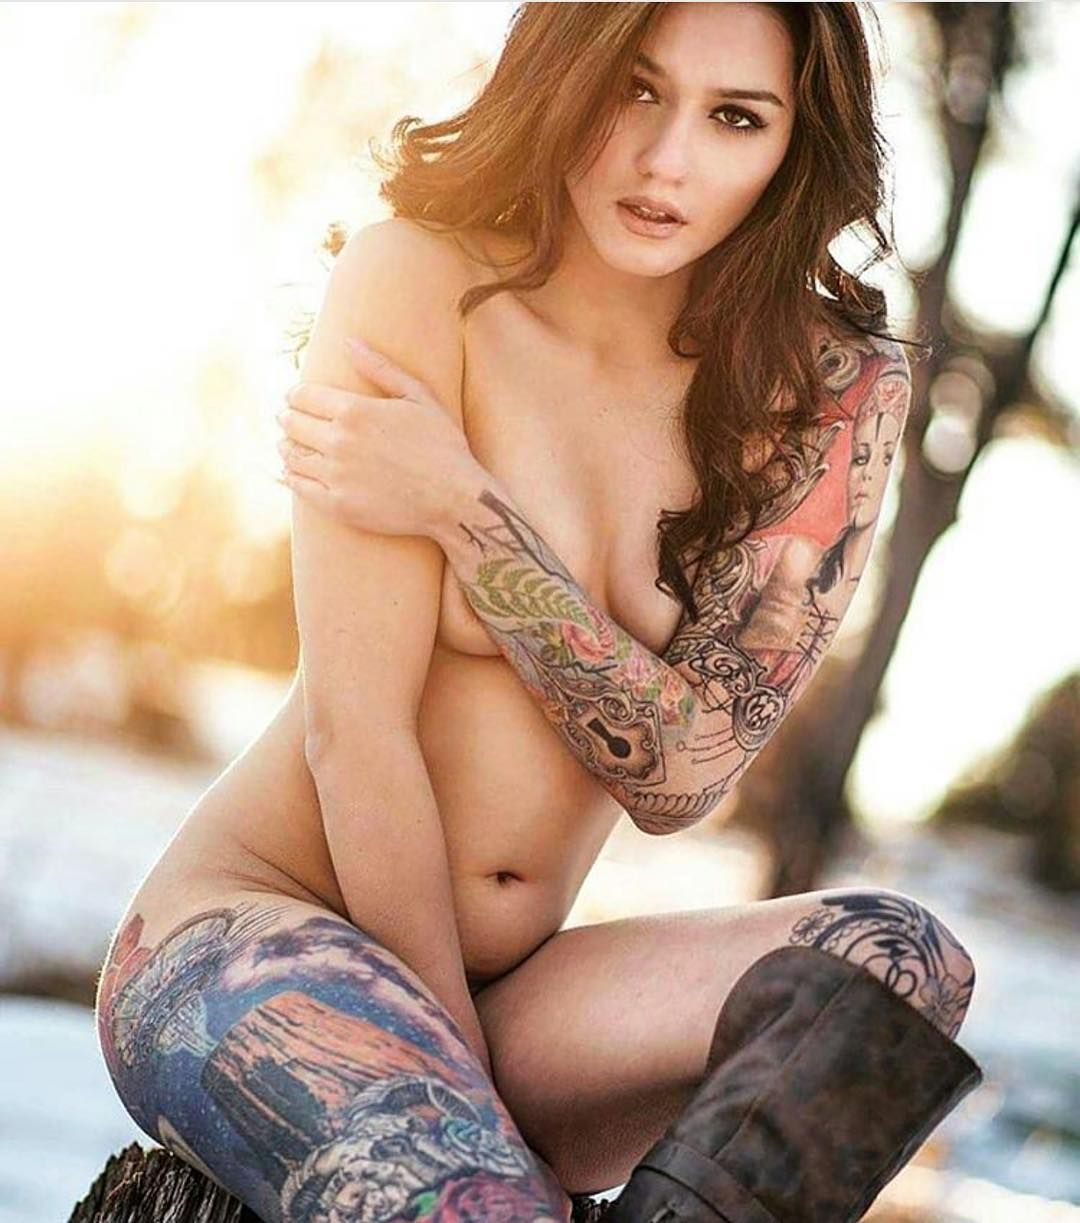 376 curtidas 5 coment rios w o m e n w i t h i n k for Nude women tattoo